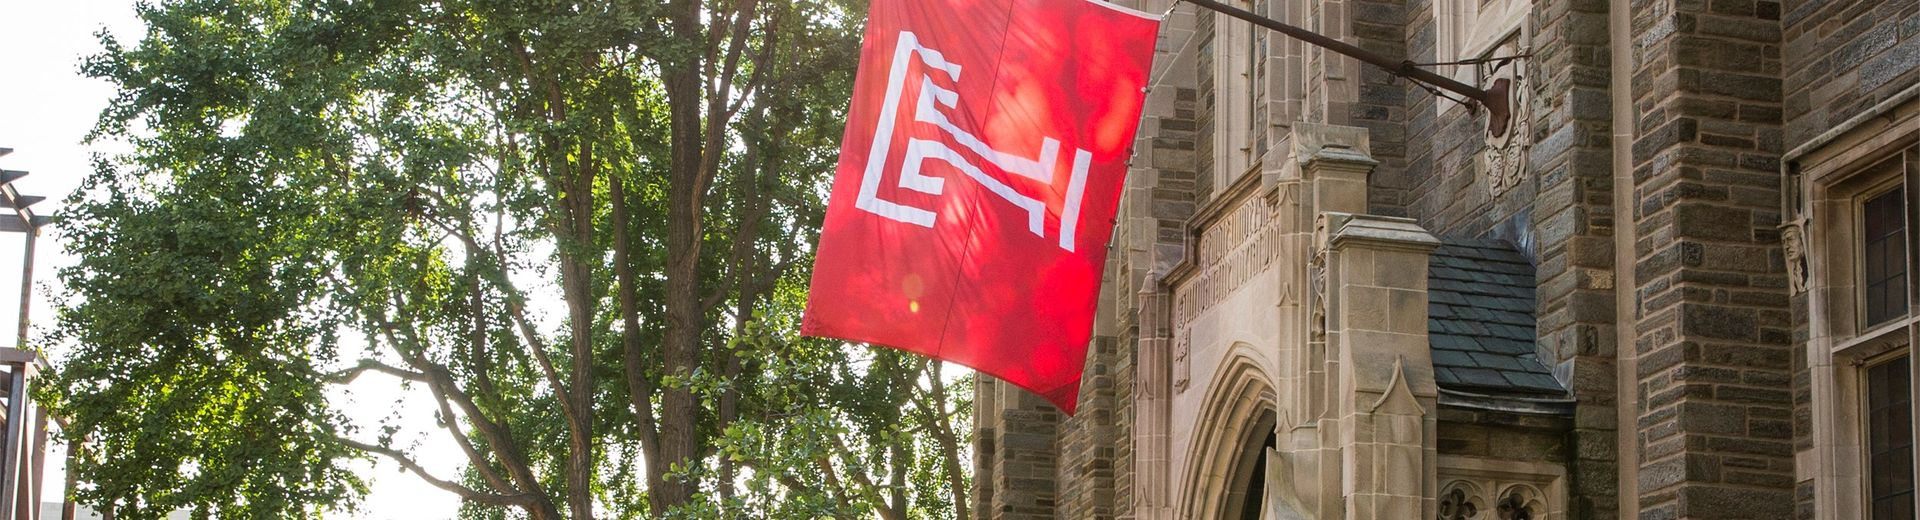 Temple University flag hangs from a historic building on campus.